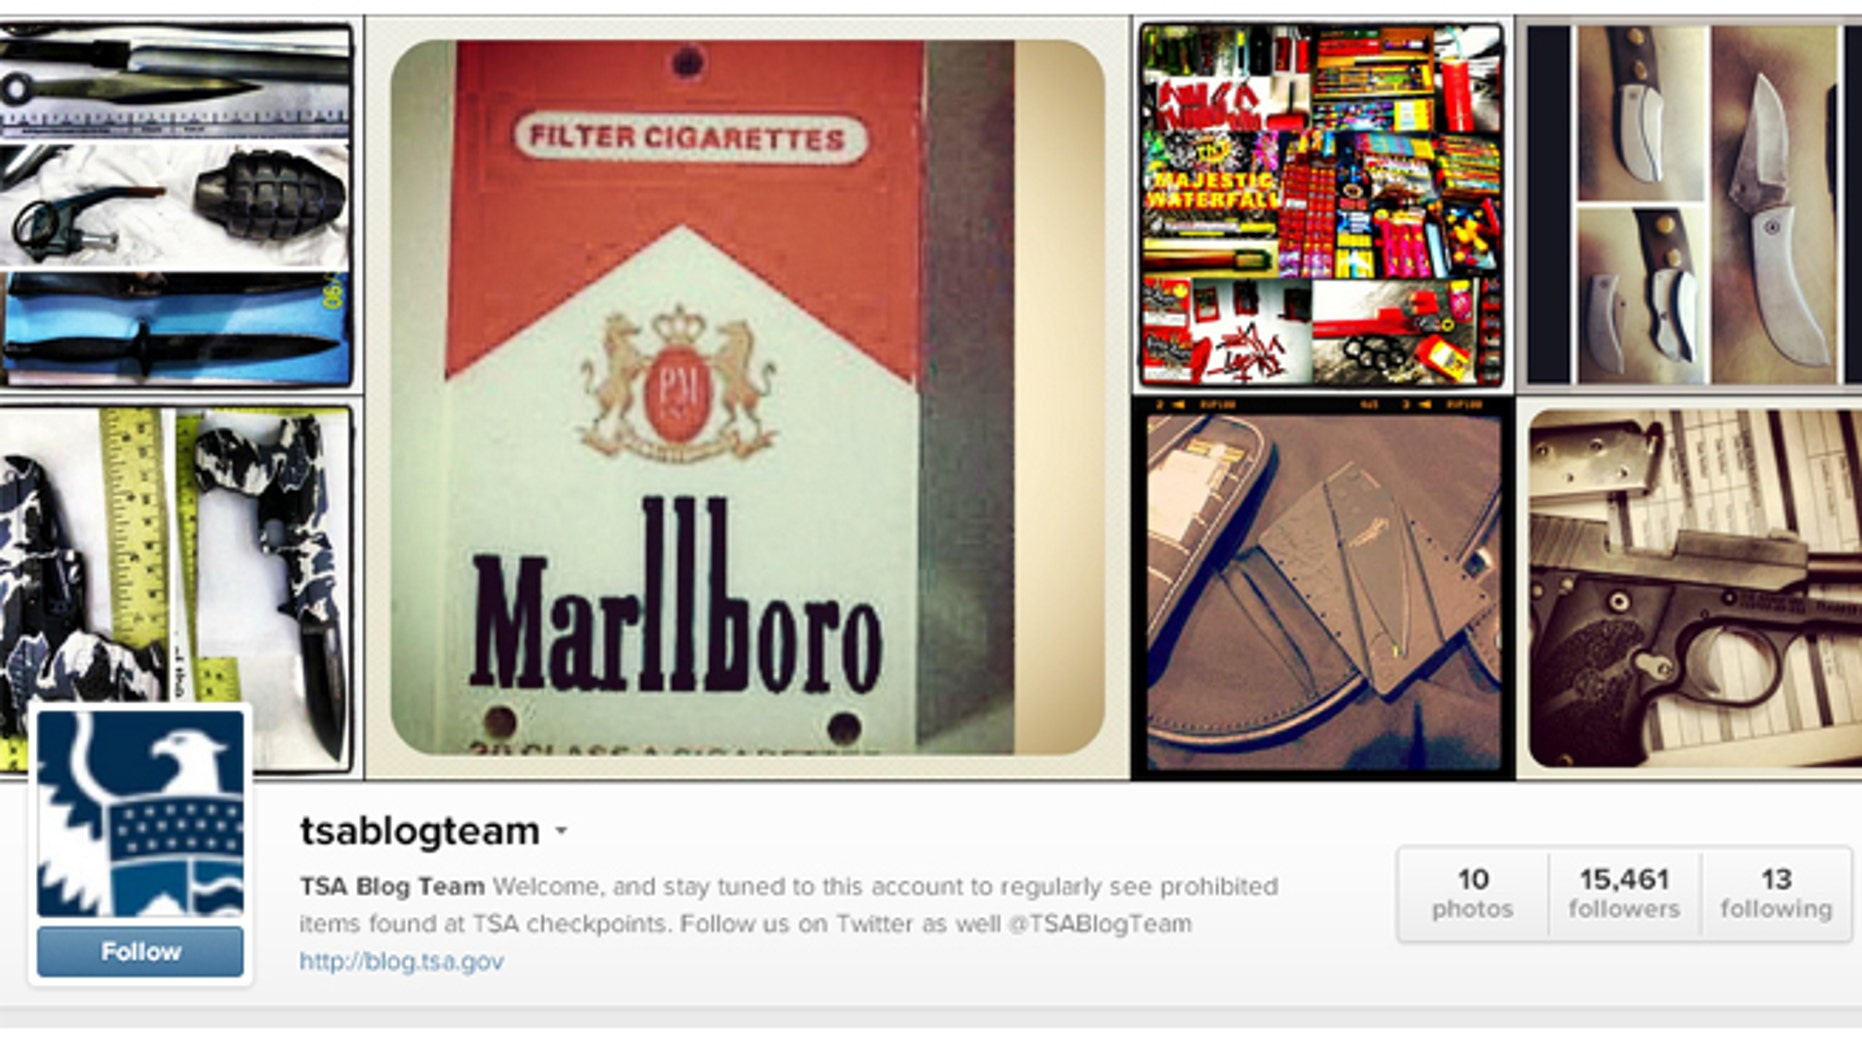 The TSA started an Instagram account where they post pictures of prohibited items people bring to the airport.